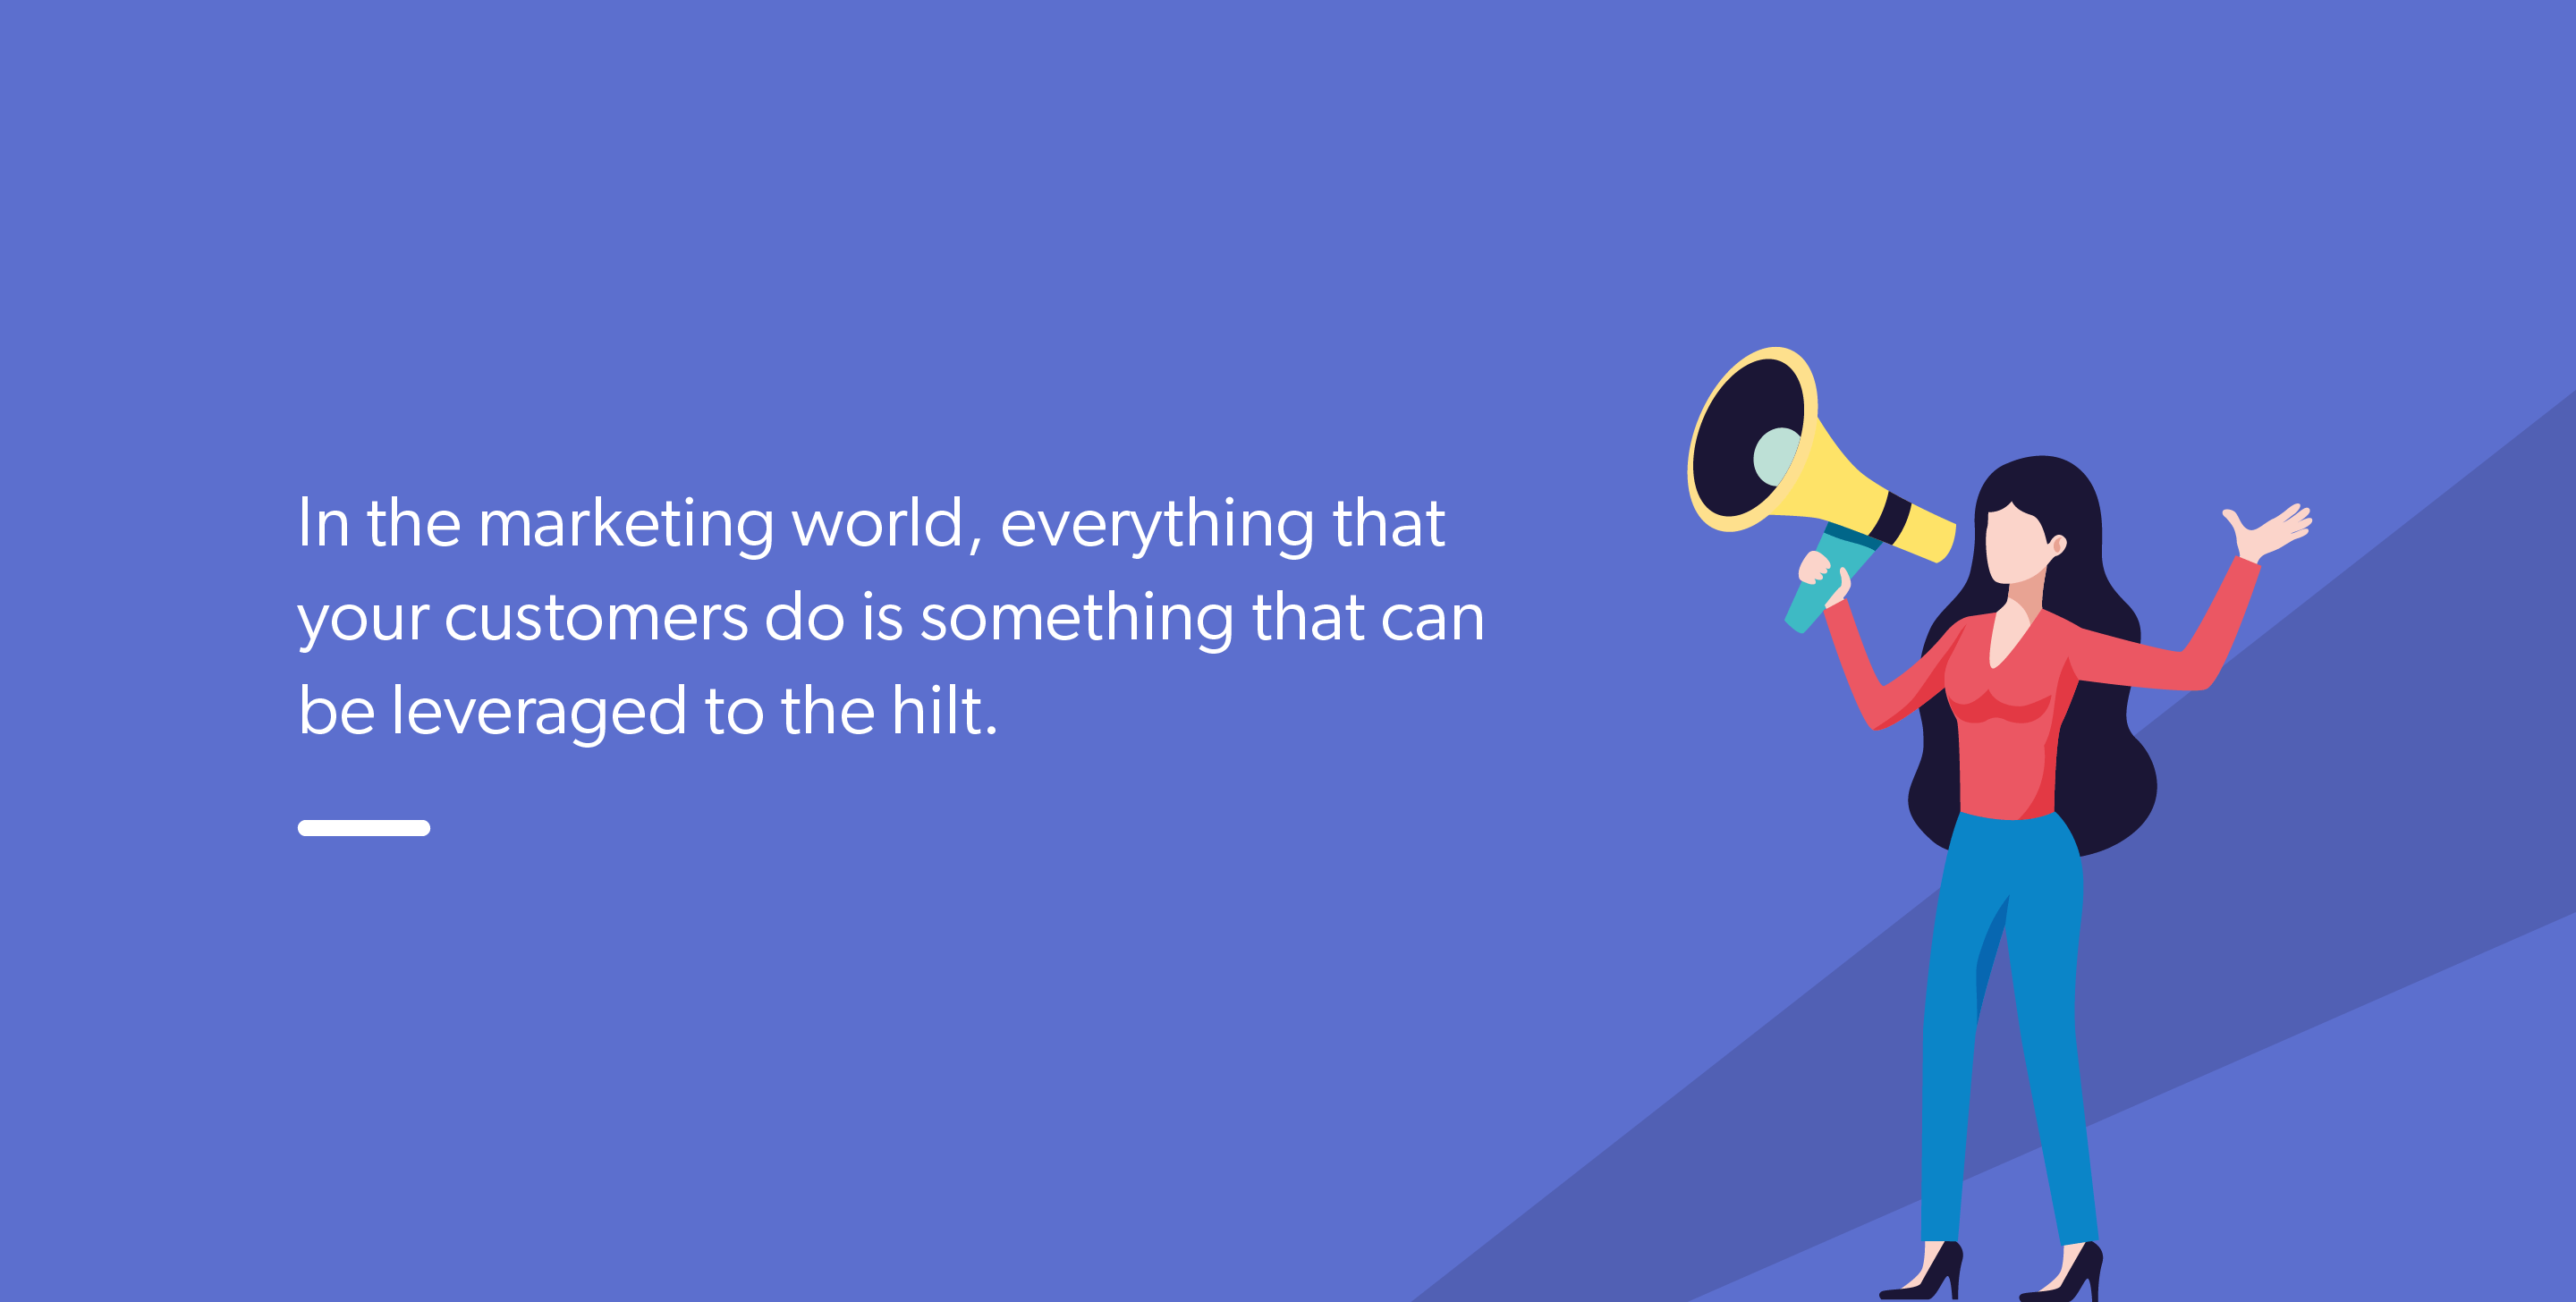 In the marketing world, everything that your customers do is something that can be leveraged to the hilt.